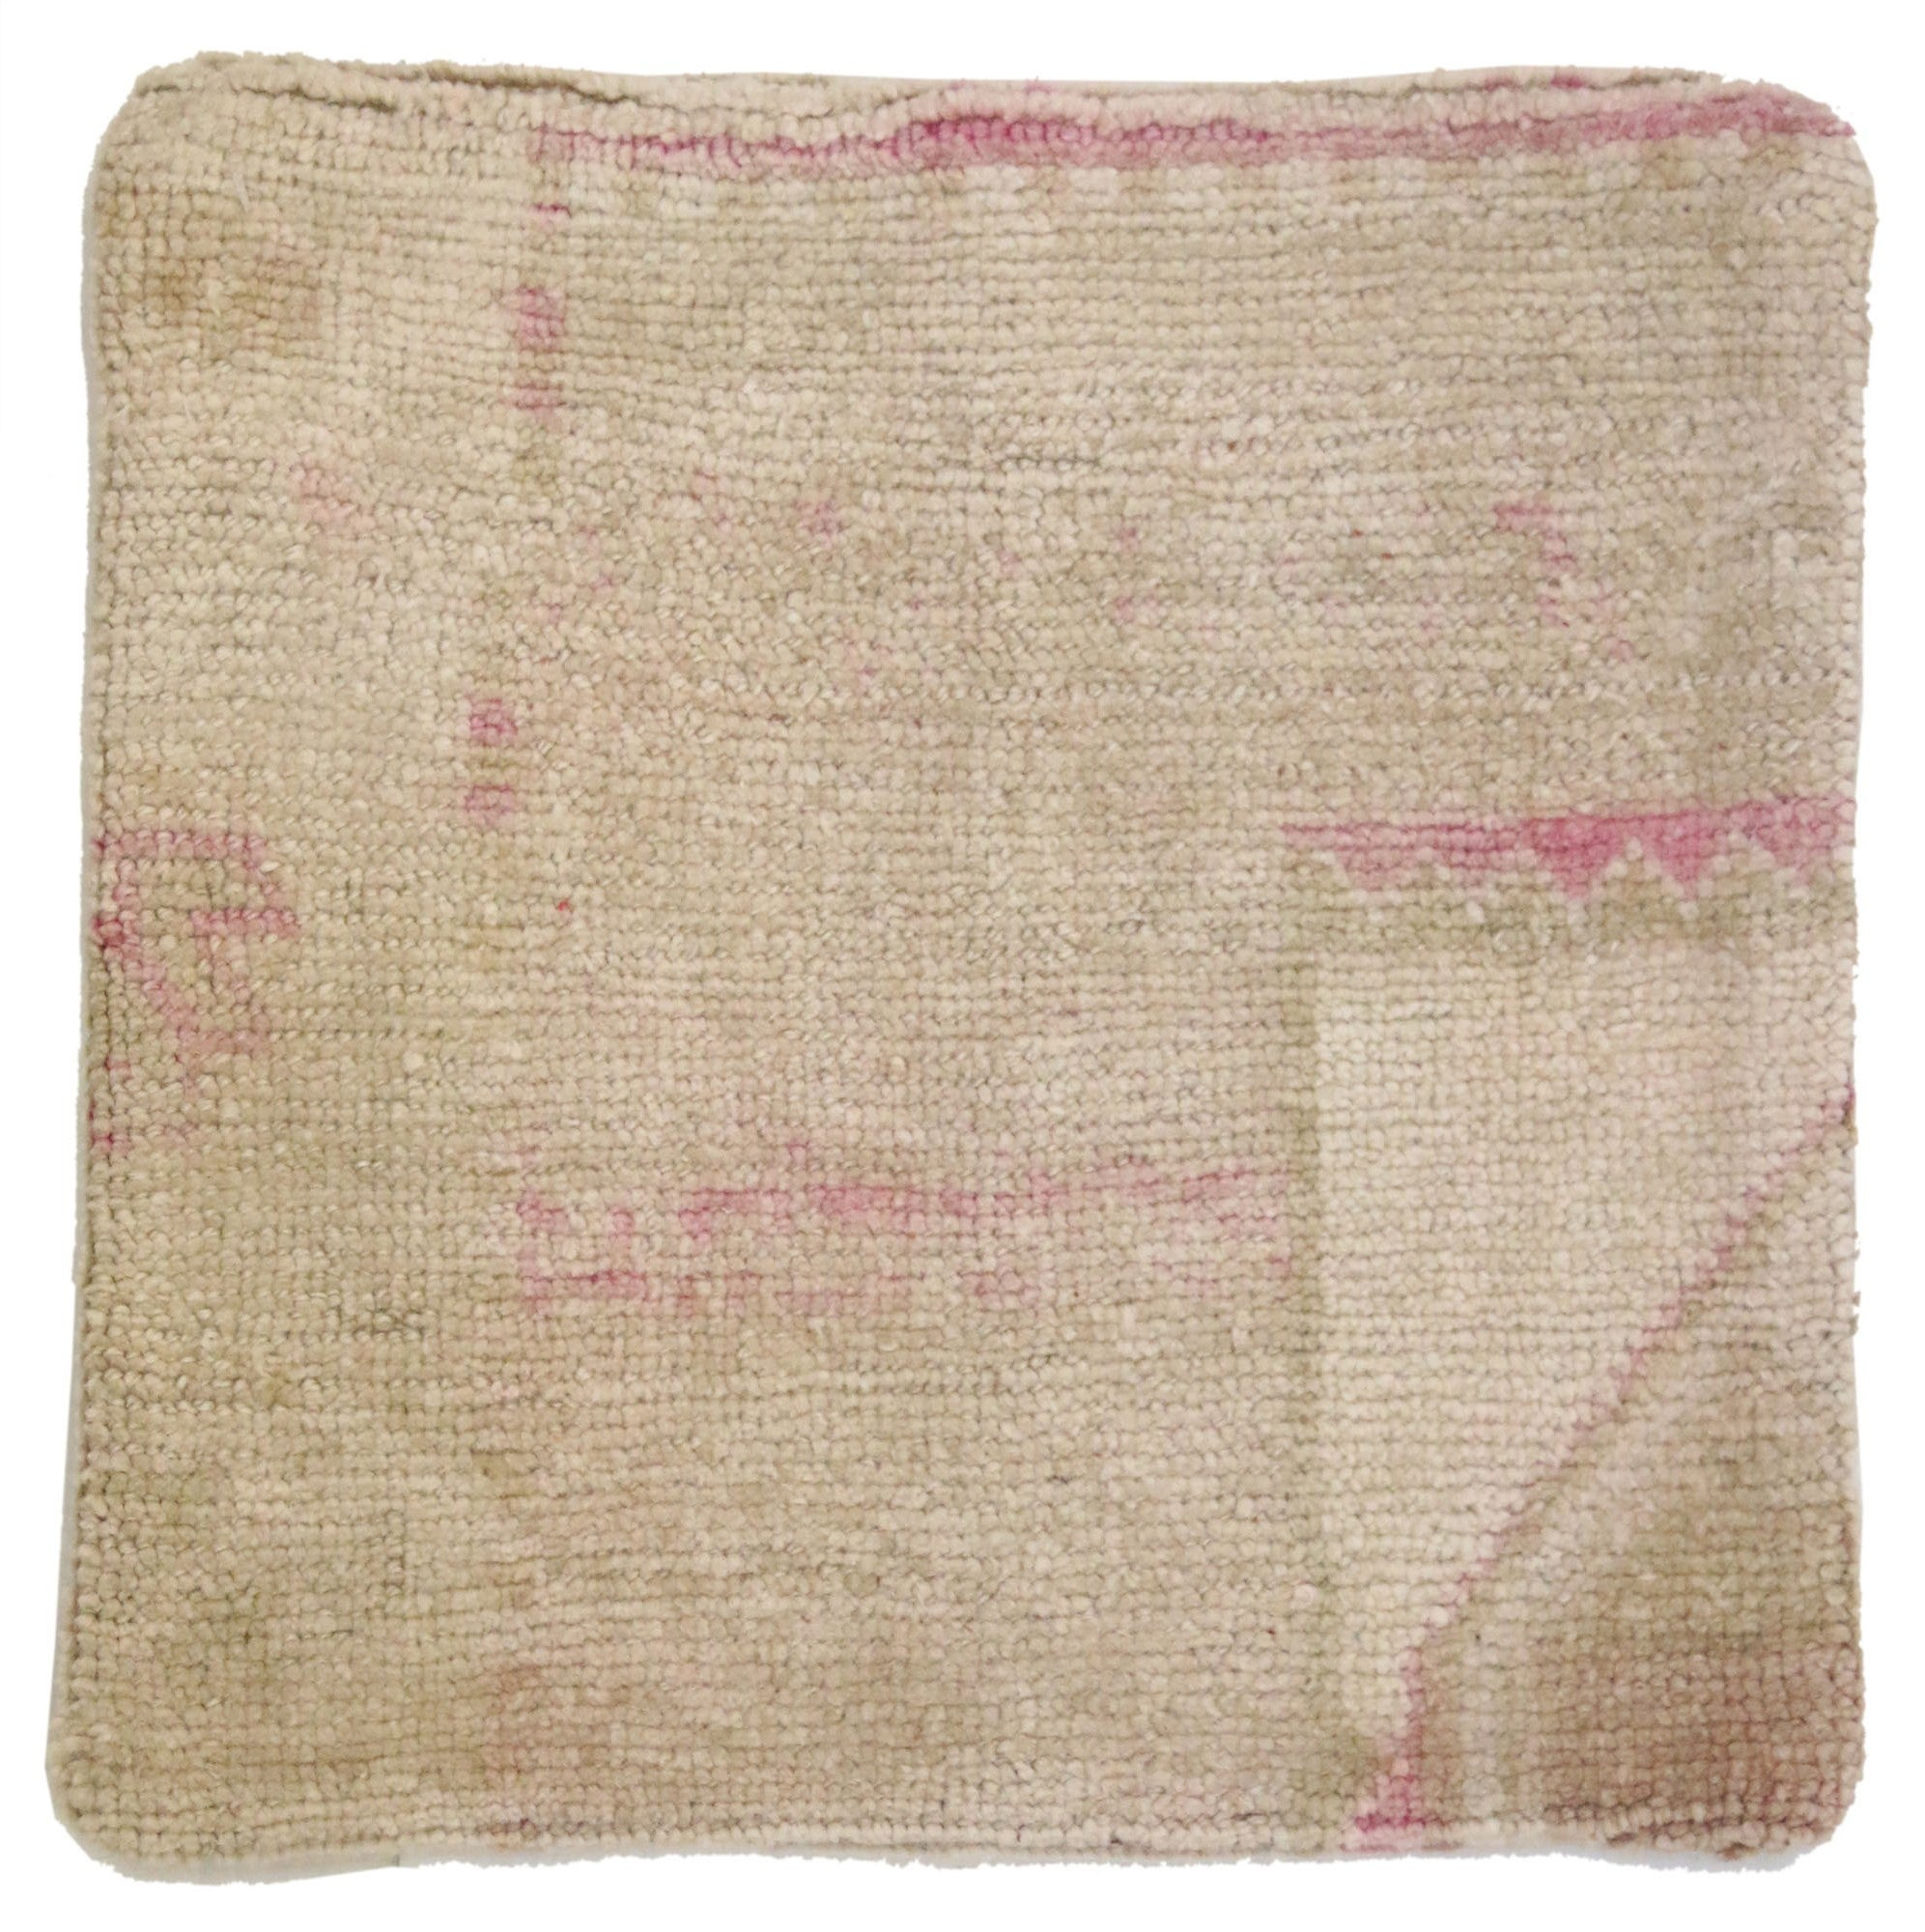 Vintage Oushak Pillow Cover with Soft Muted Colors, Oushak Rug Pillow Cover